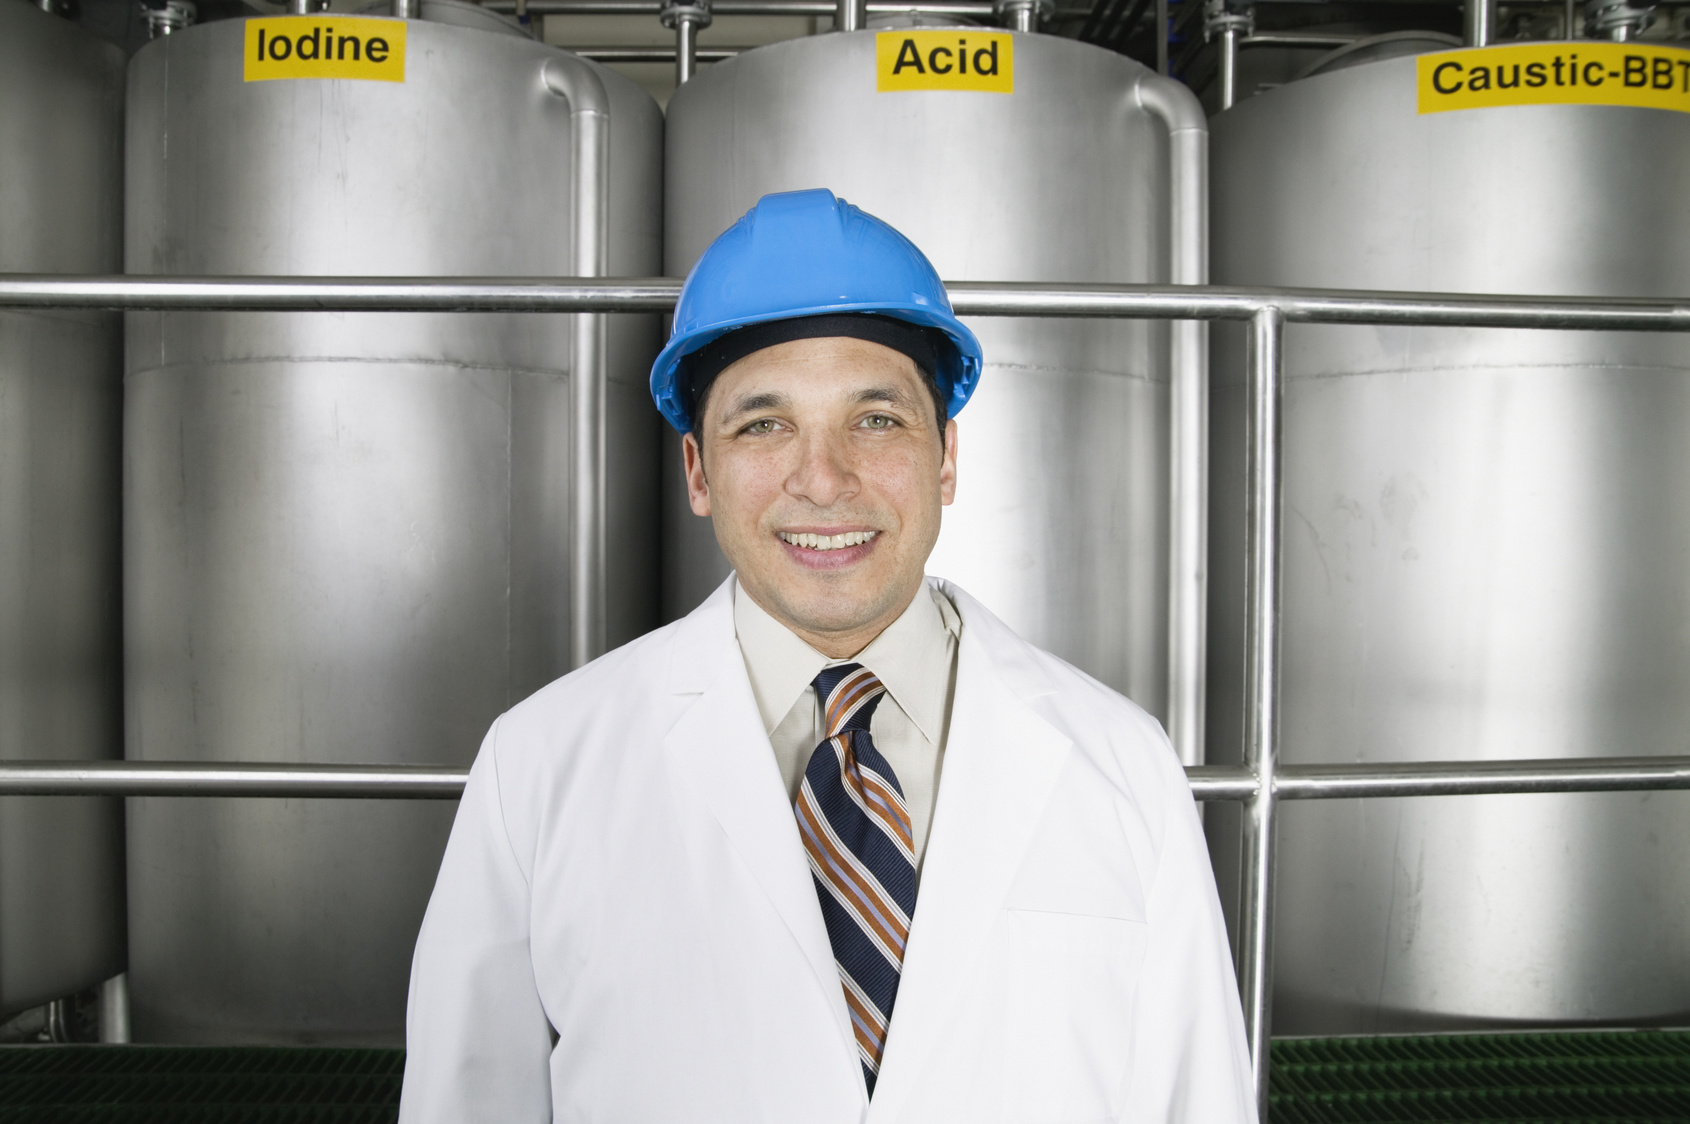 Portrait of man wearing hardhat and lab coat